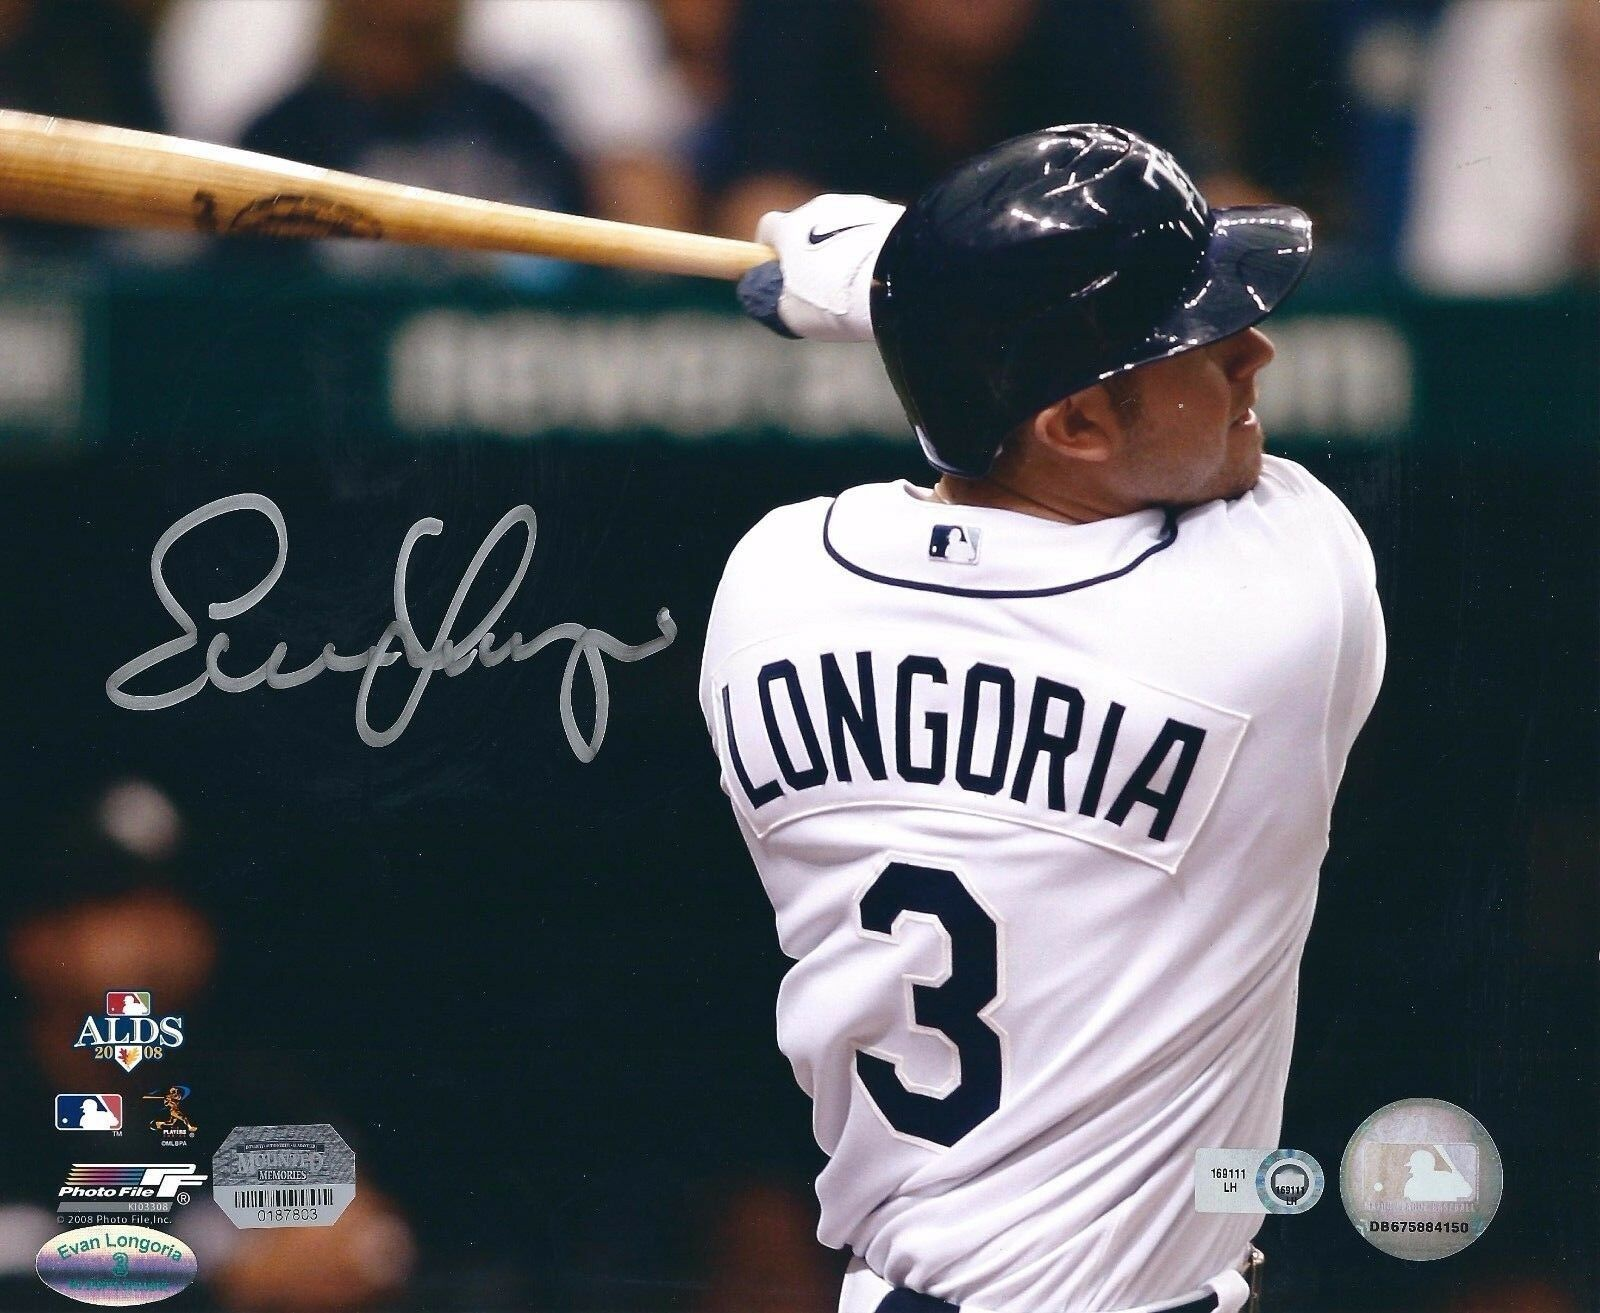 Evan Longoria Signed Tampa Bay Rays Baseball 8x10 Photo MLB COA